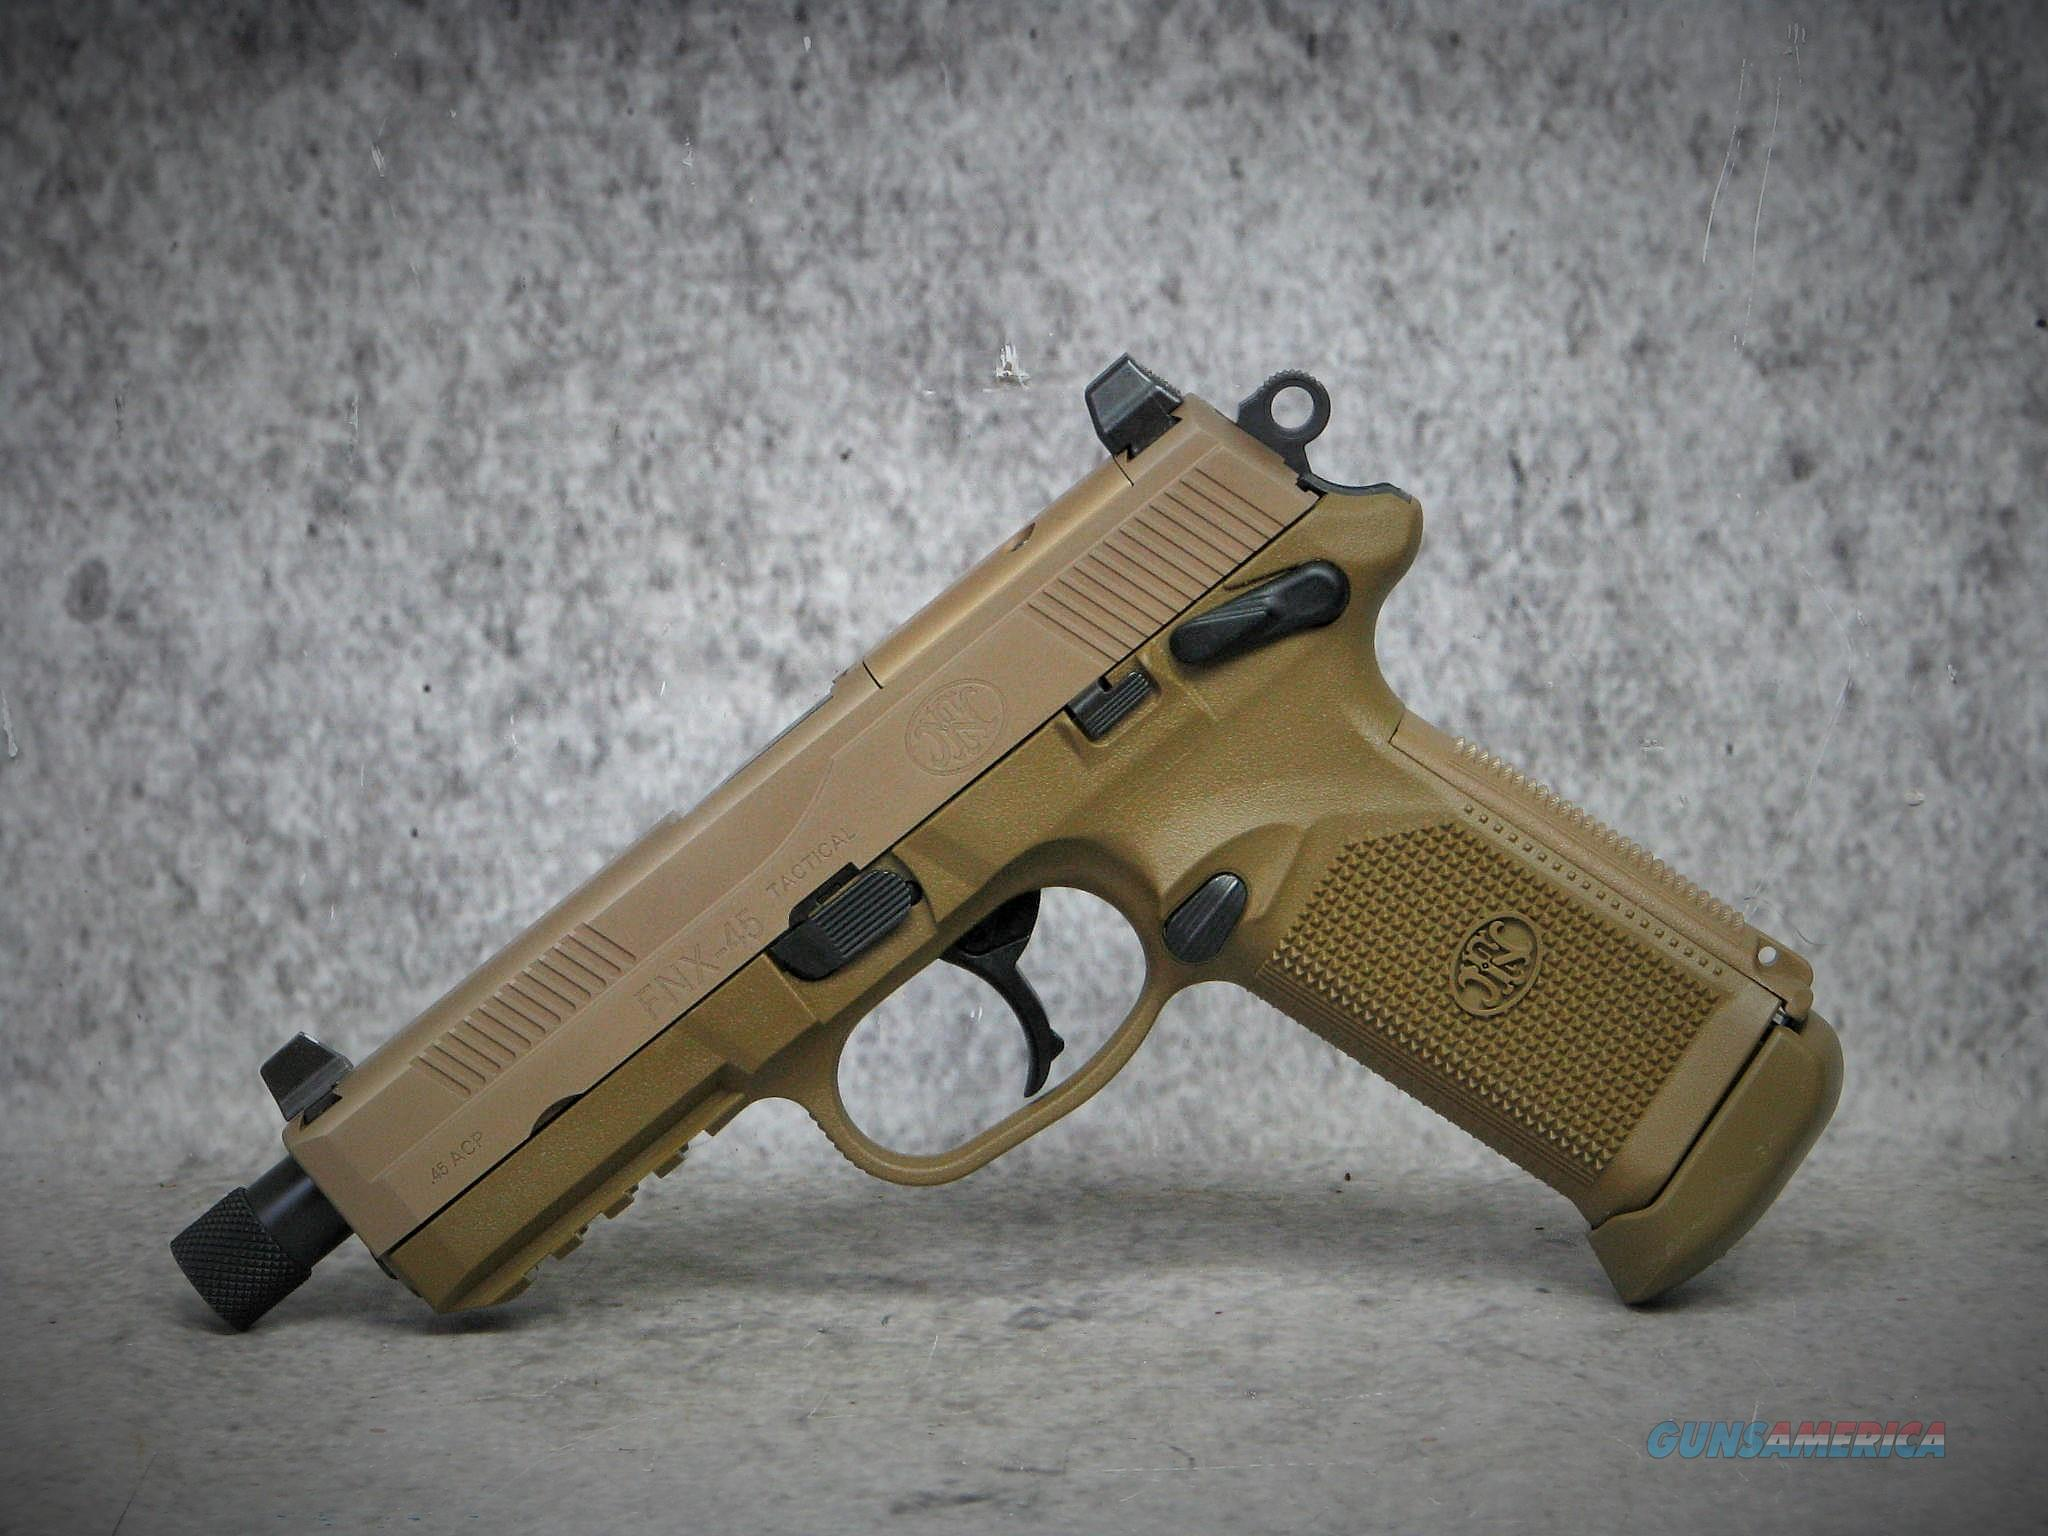 FN FNX-45 Tactical 45ACP 3-15RD Mags 66968 FNX45 /EASY PAY $102 MONTHLY  Guns > Pistols > FNH - Fabrique Nationale (FN) Pistols > FNP